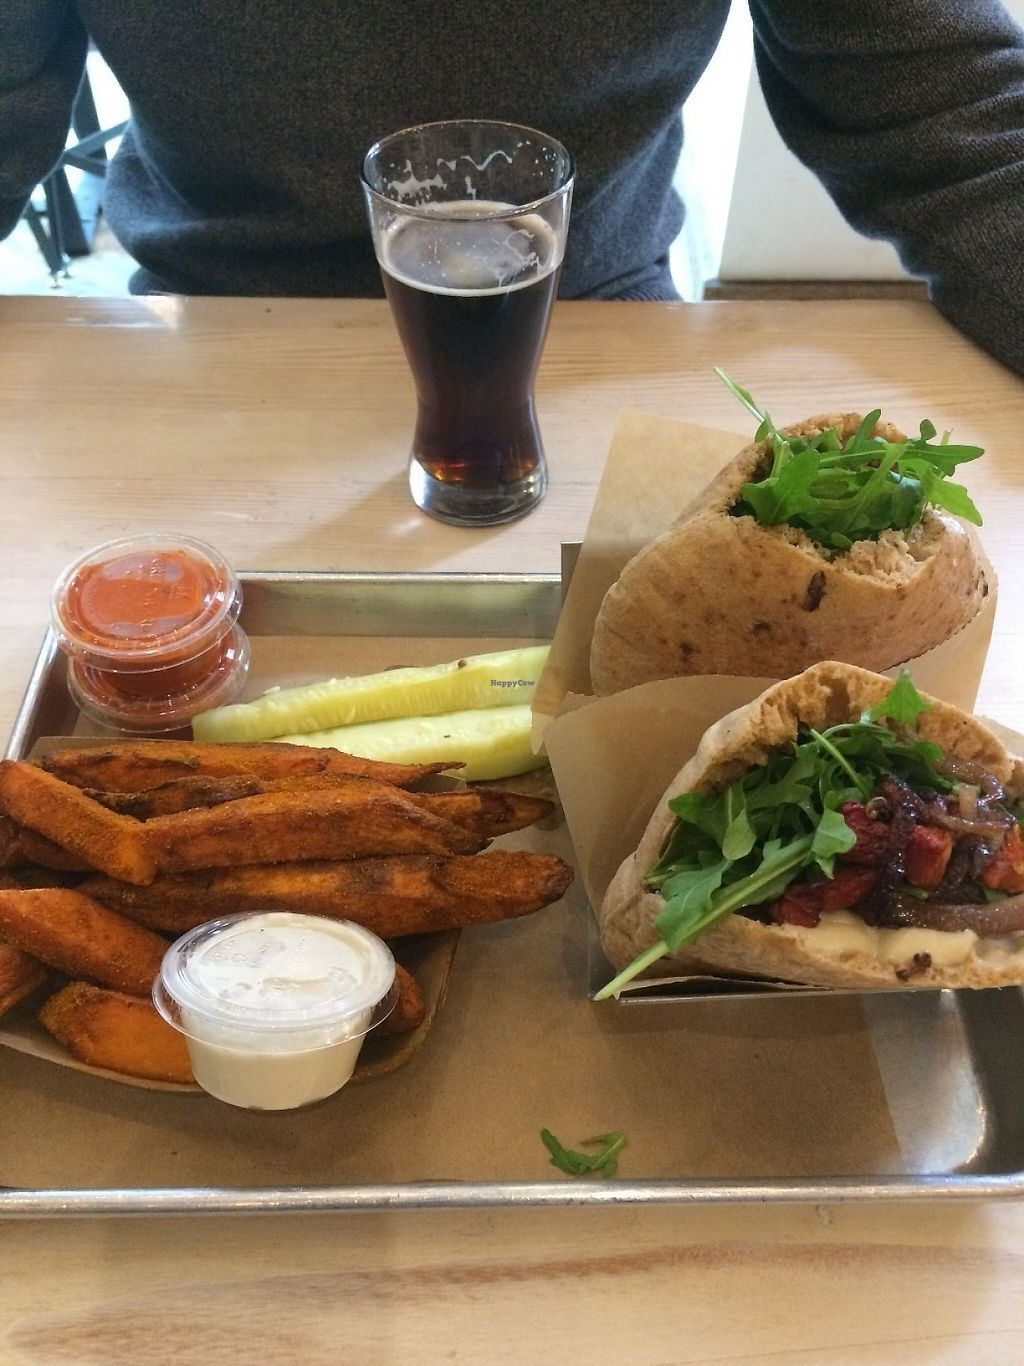 """Photo of Shouk  by <a href=""""/members/profile/MyGreenTongue"""">MyGreenTongue</a> <br/>Burger, Pita, Chips and Beer <br/> May 24, 2017  - <a href='/contact/abuse/image/73108/262178'>Report</a>"""